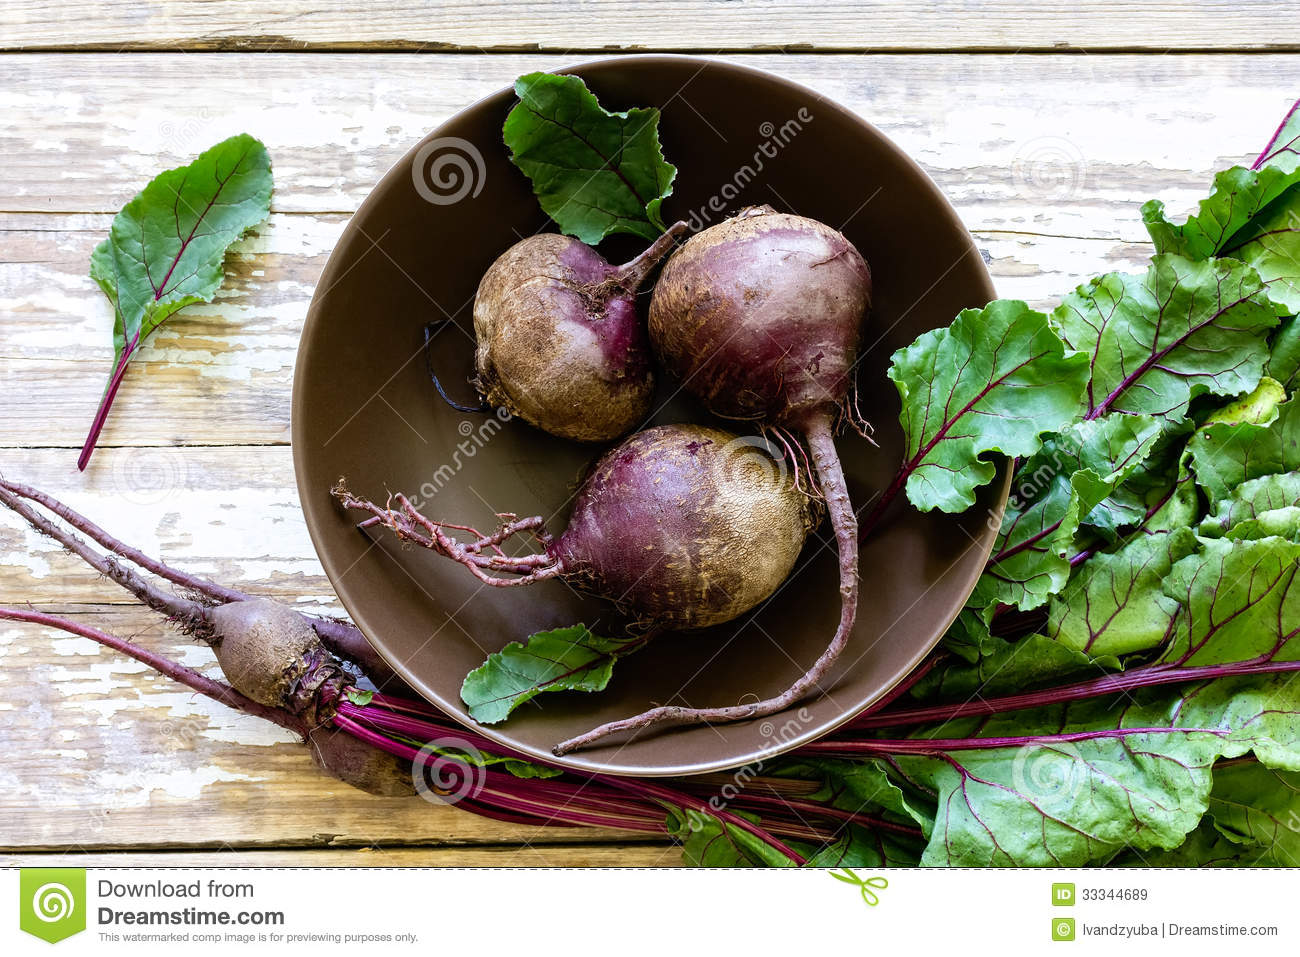 how to keep beets fresh